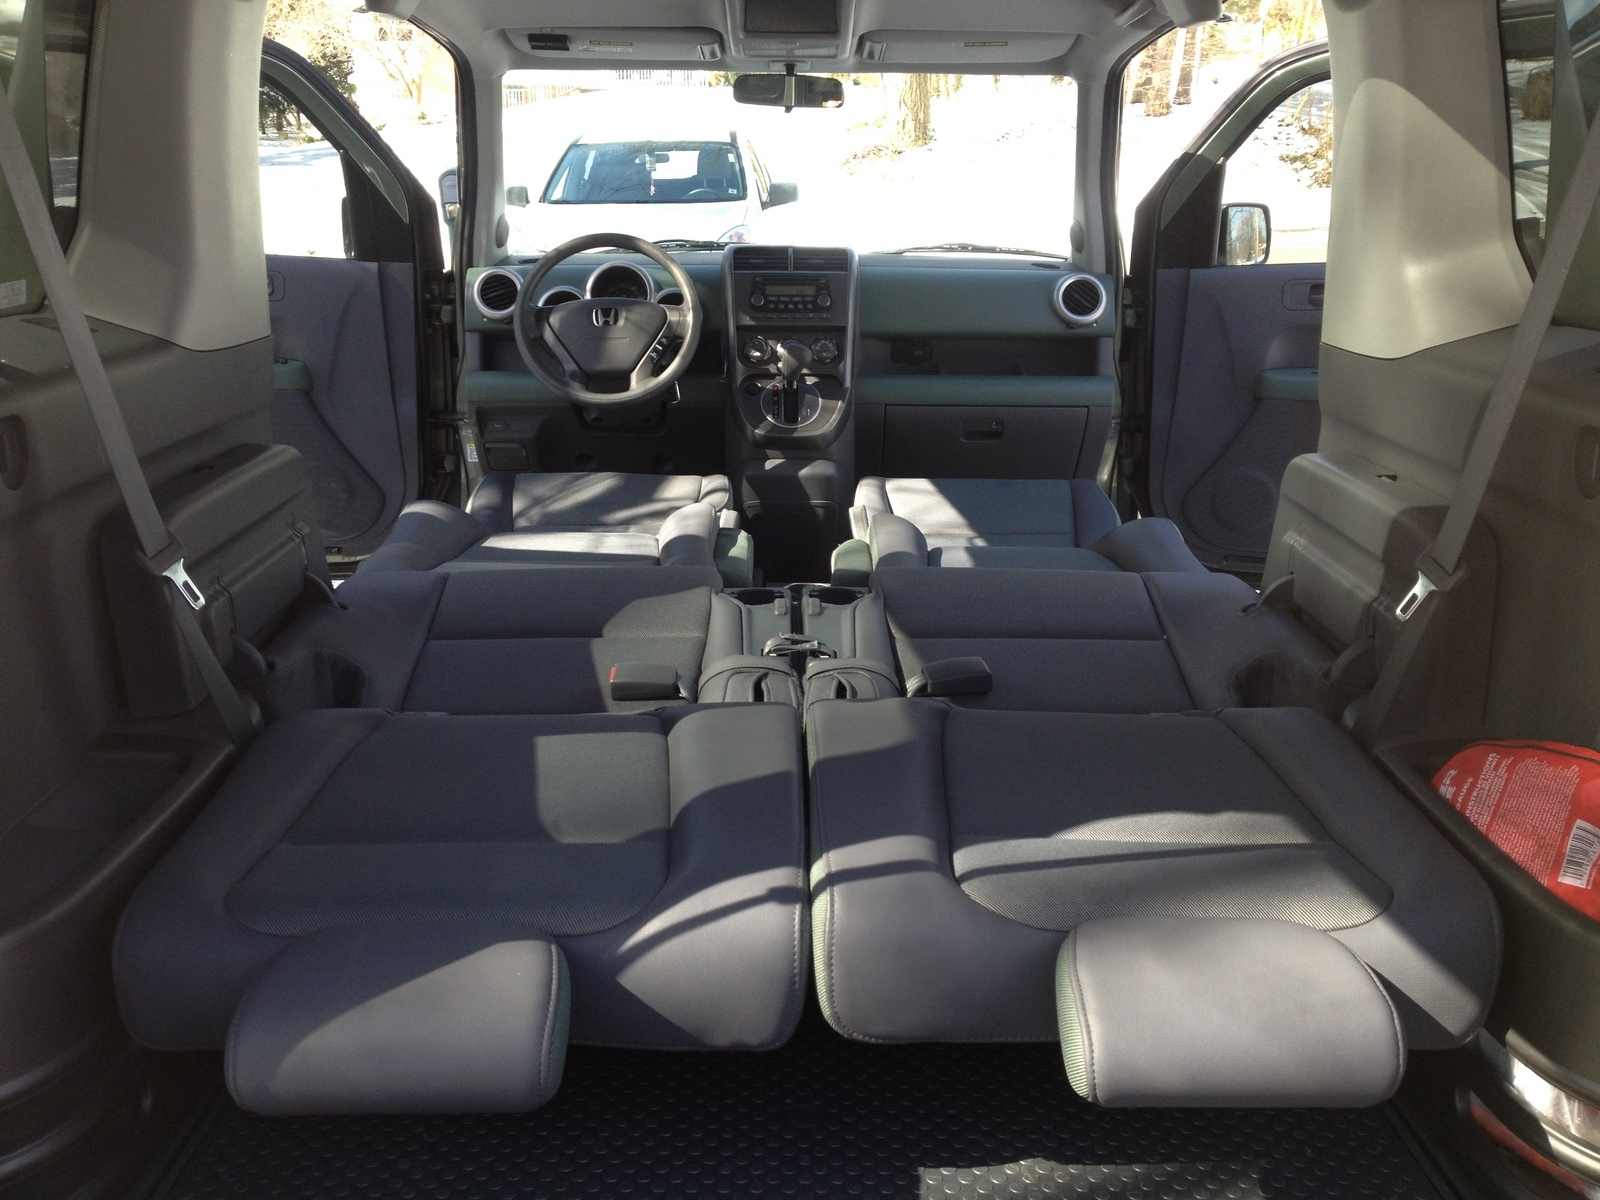 2005 Honda Element - Interior Pictures - CarGurus